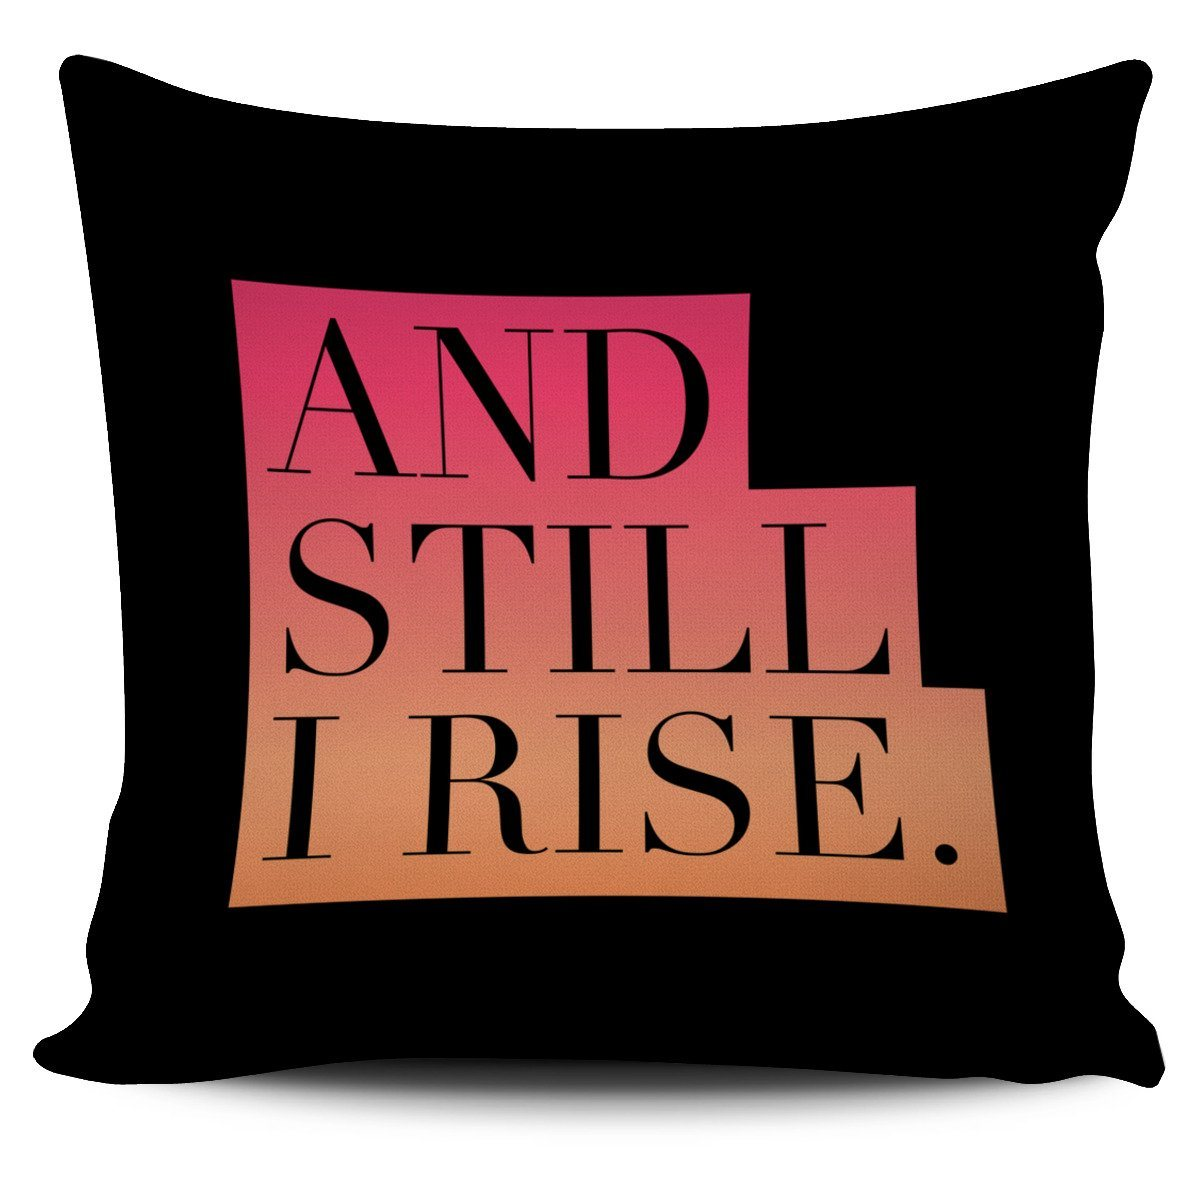 """And still I rise."" Pillow Cover"